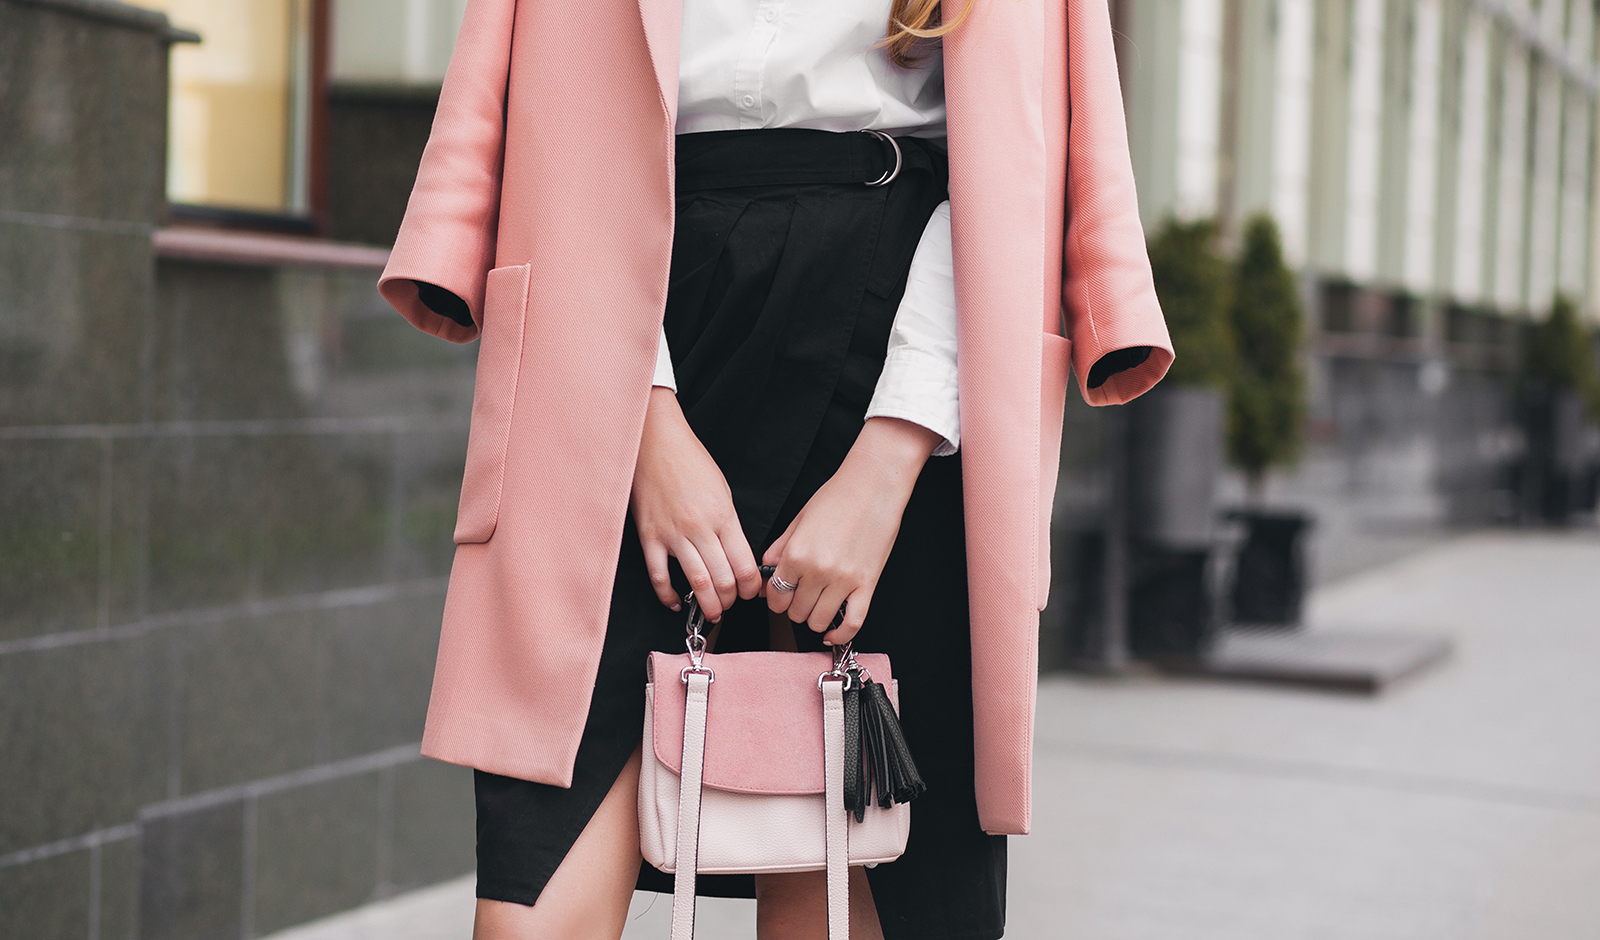 tips-for-buying-the-perfect-winter-coat-woman-wearing-coat-on-street-main-image